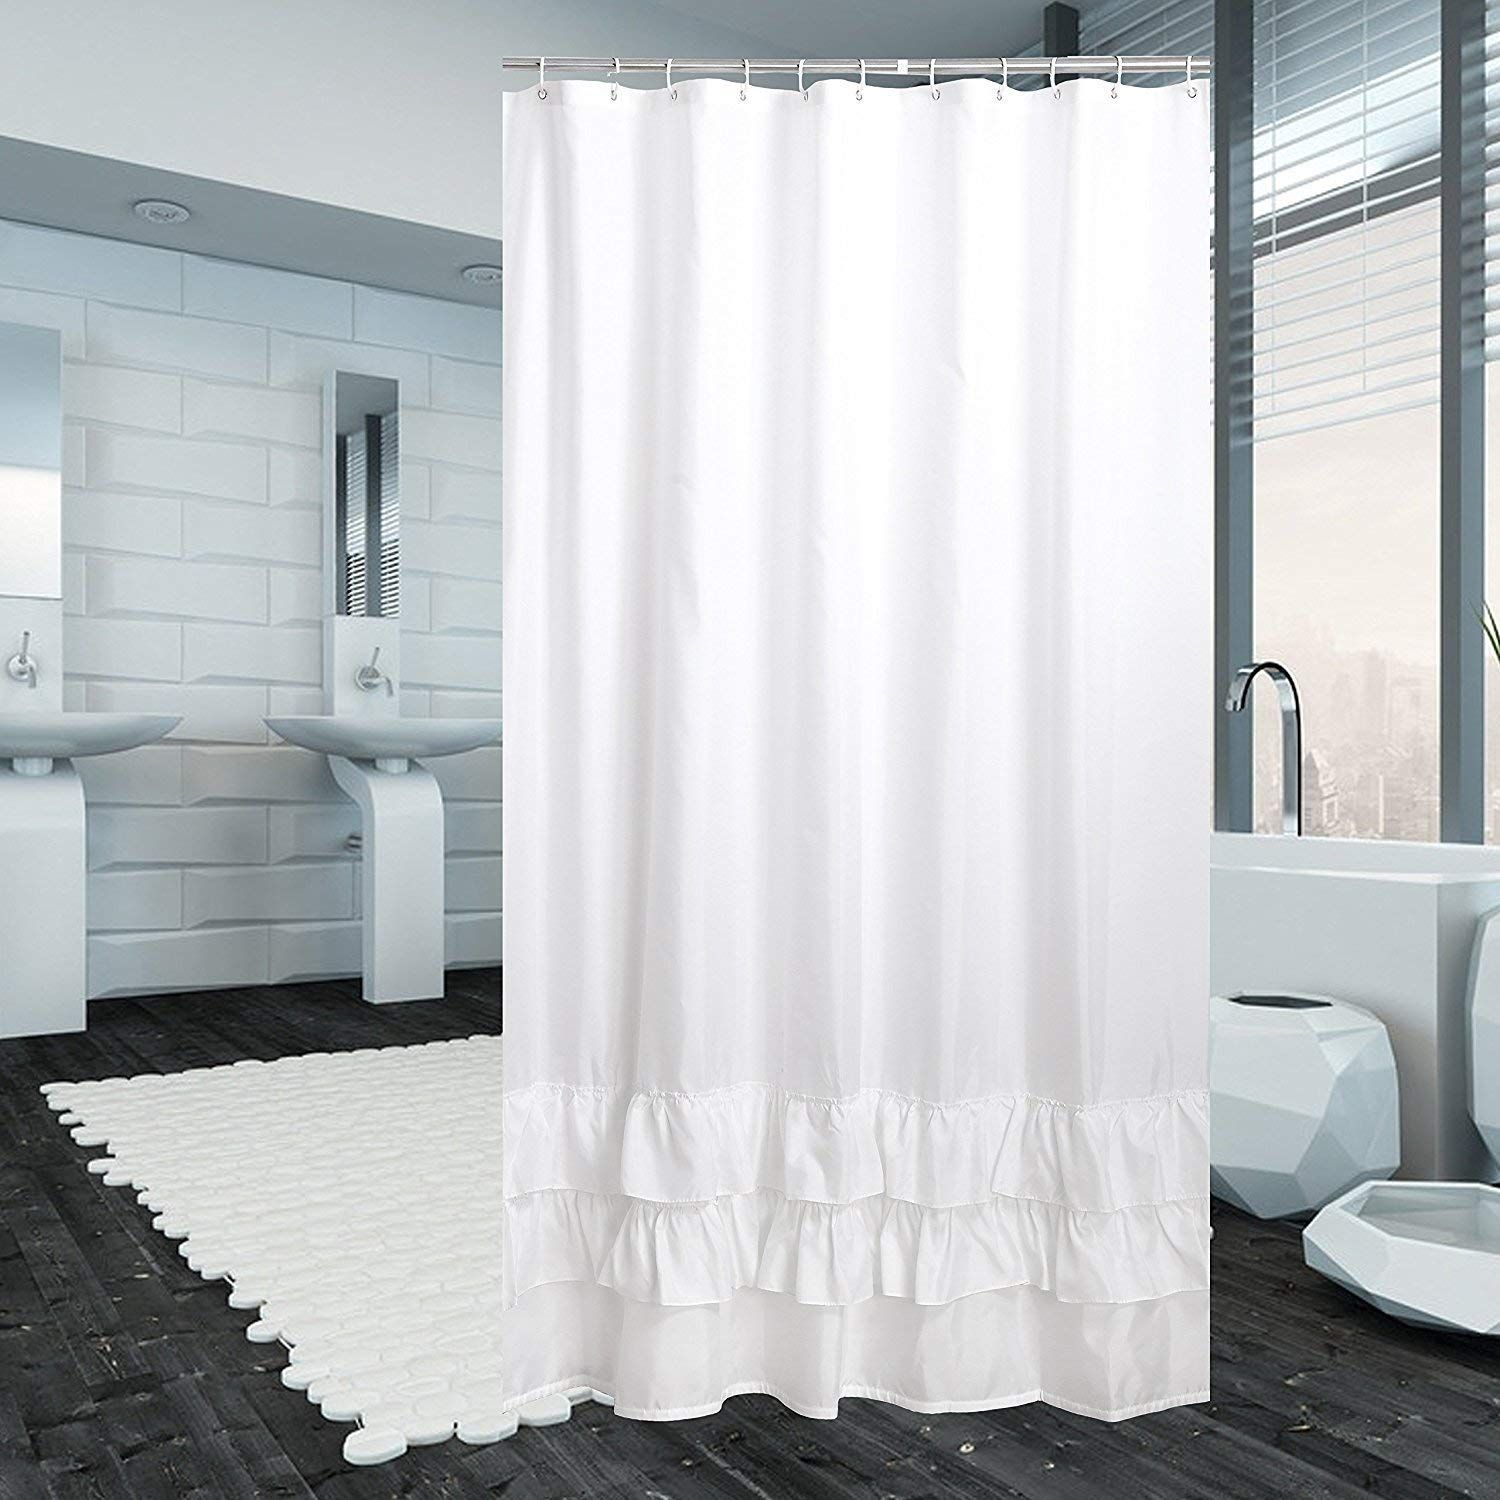 Avershine Ruffle Mildew Resistant Polyester Fabric Shower Curtain